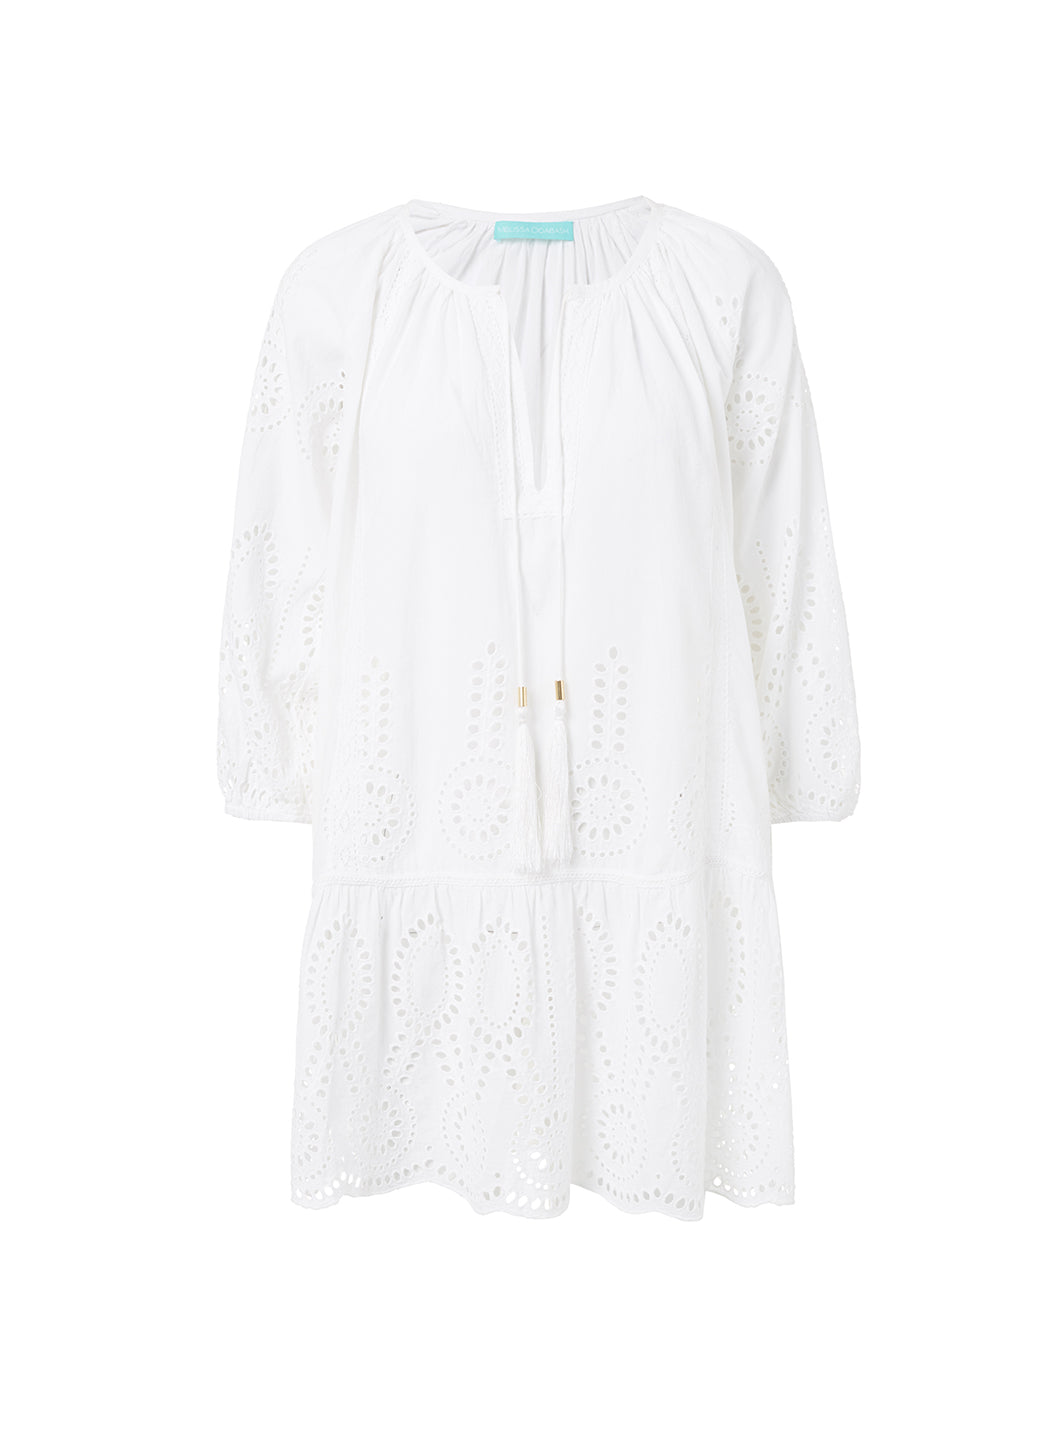 Ashley White Embroidered 3/4 Sleeve Short Cover-Up  - Melissa Odabash Beachwear